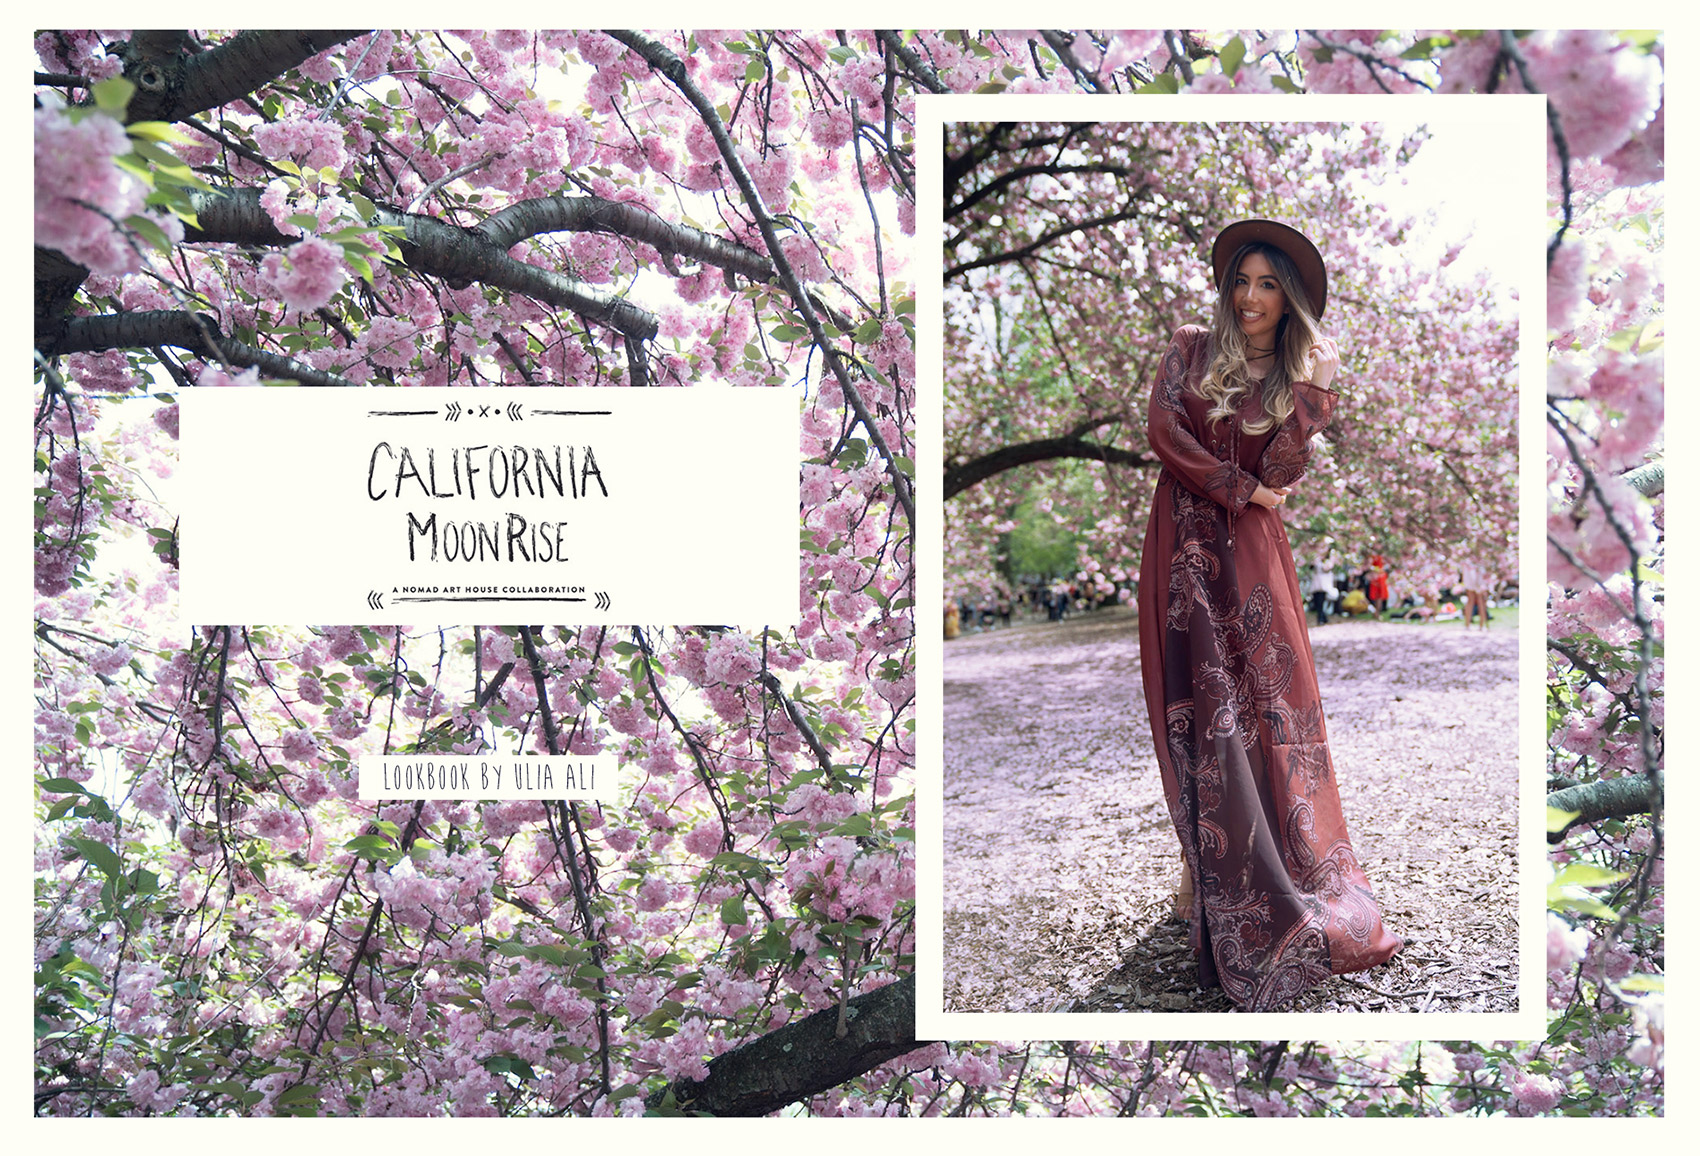 Calirfornia Moonrise Review